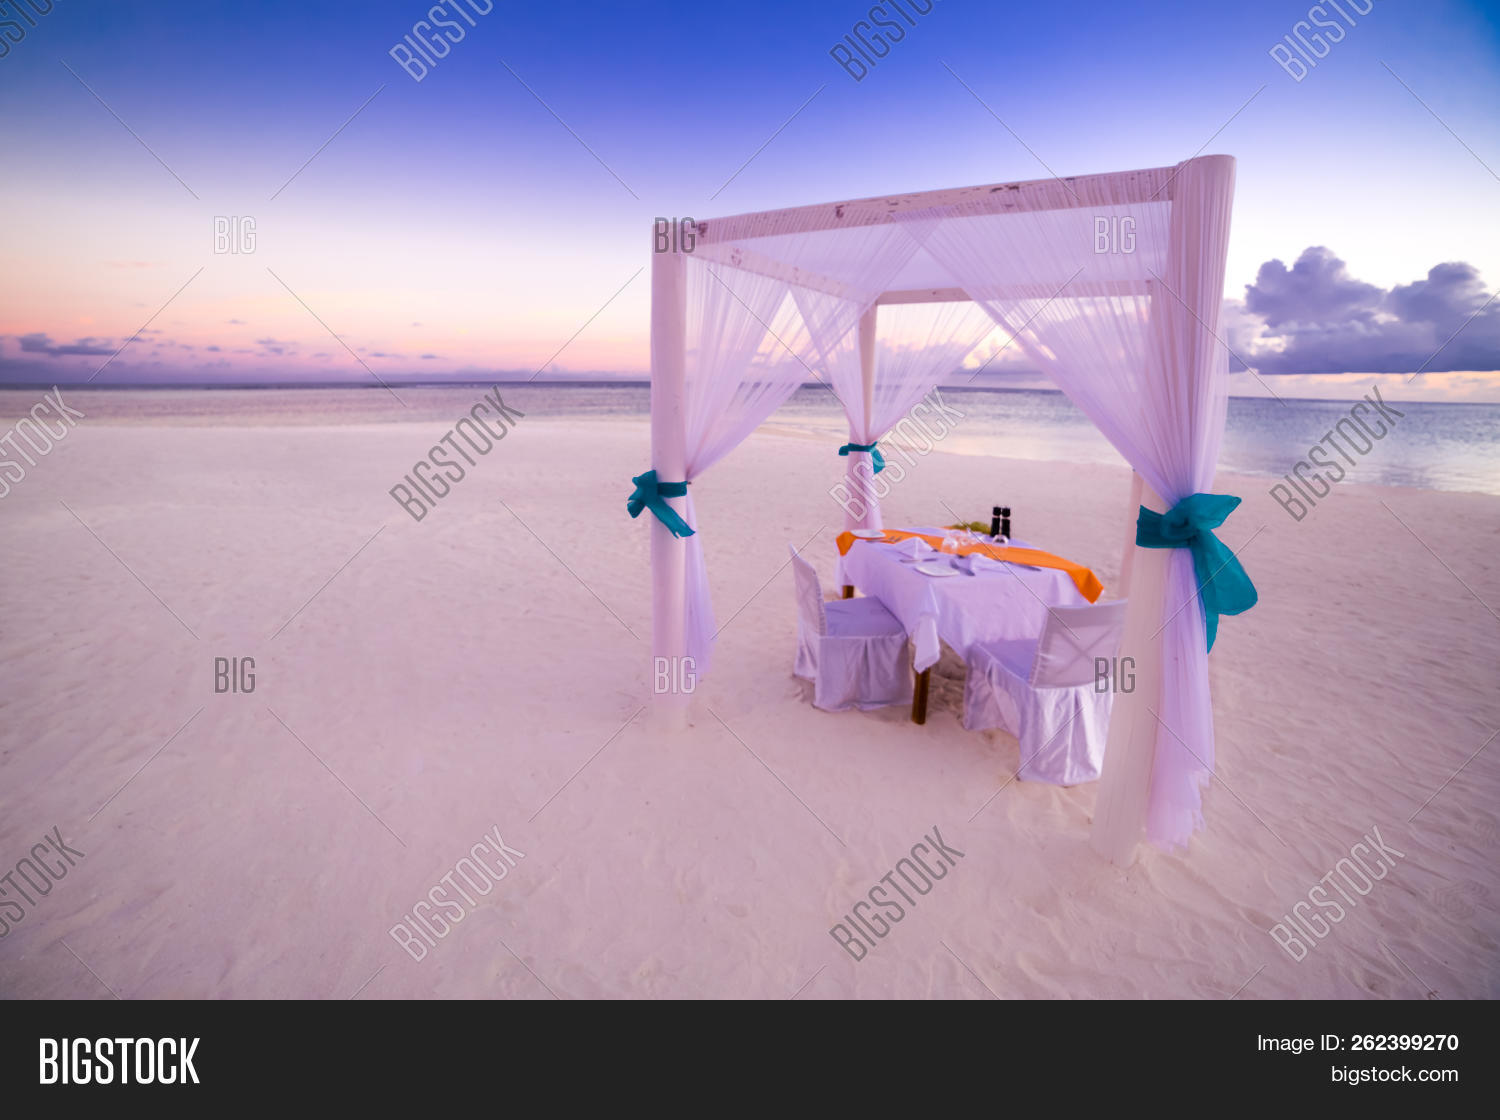 anniversary,beach,beautiful,candle,catering,celebration,copy,couple,day,decoration,dining,dinner,dreamy,drink,elegant,fine,flower,food,glass,holiday,idyllic,light,love,luxury,marriage,meal,paradise,restaurant,romance,romantic,rose,sea,setting,setup,shore,sky,space,sunset,table,tableware,tenderness,travel,tropical,twilight,two,vacation,valentines,wedding,wine,wineglass